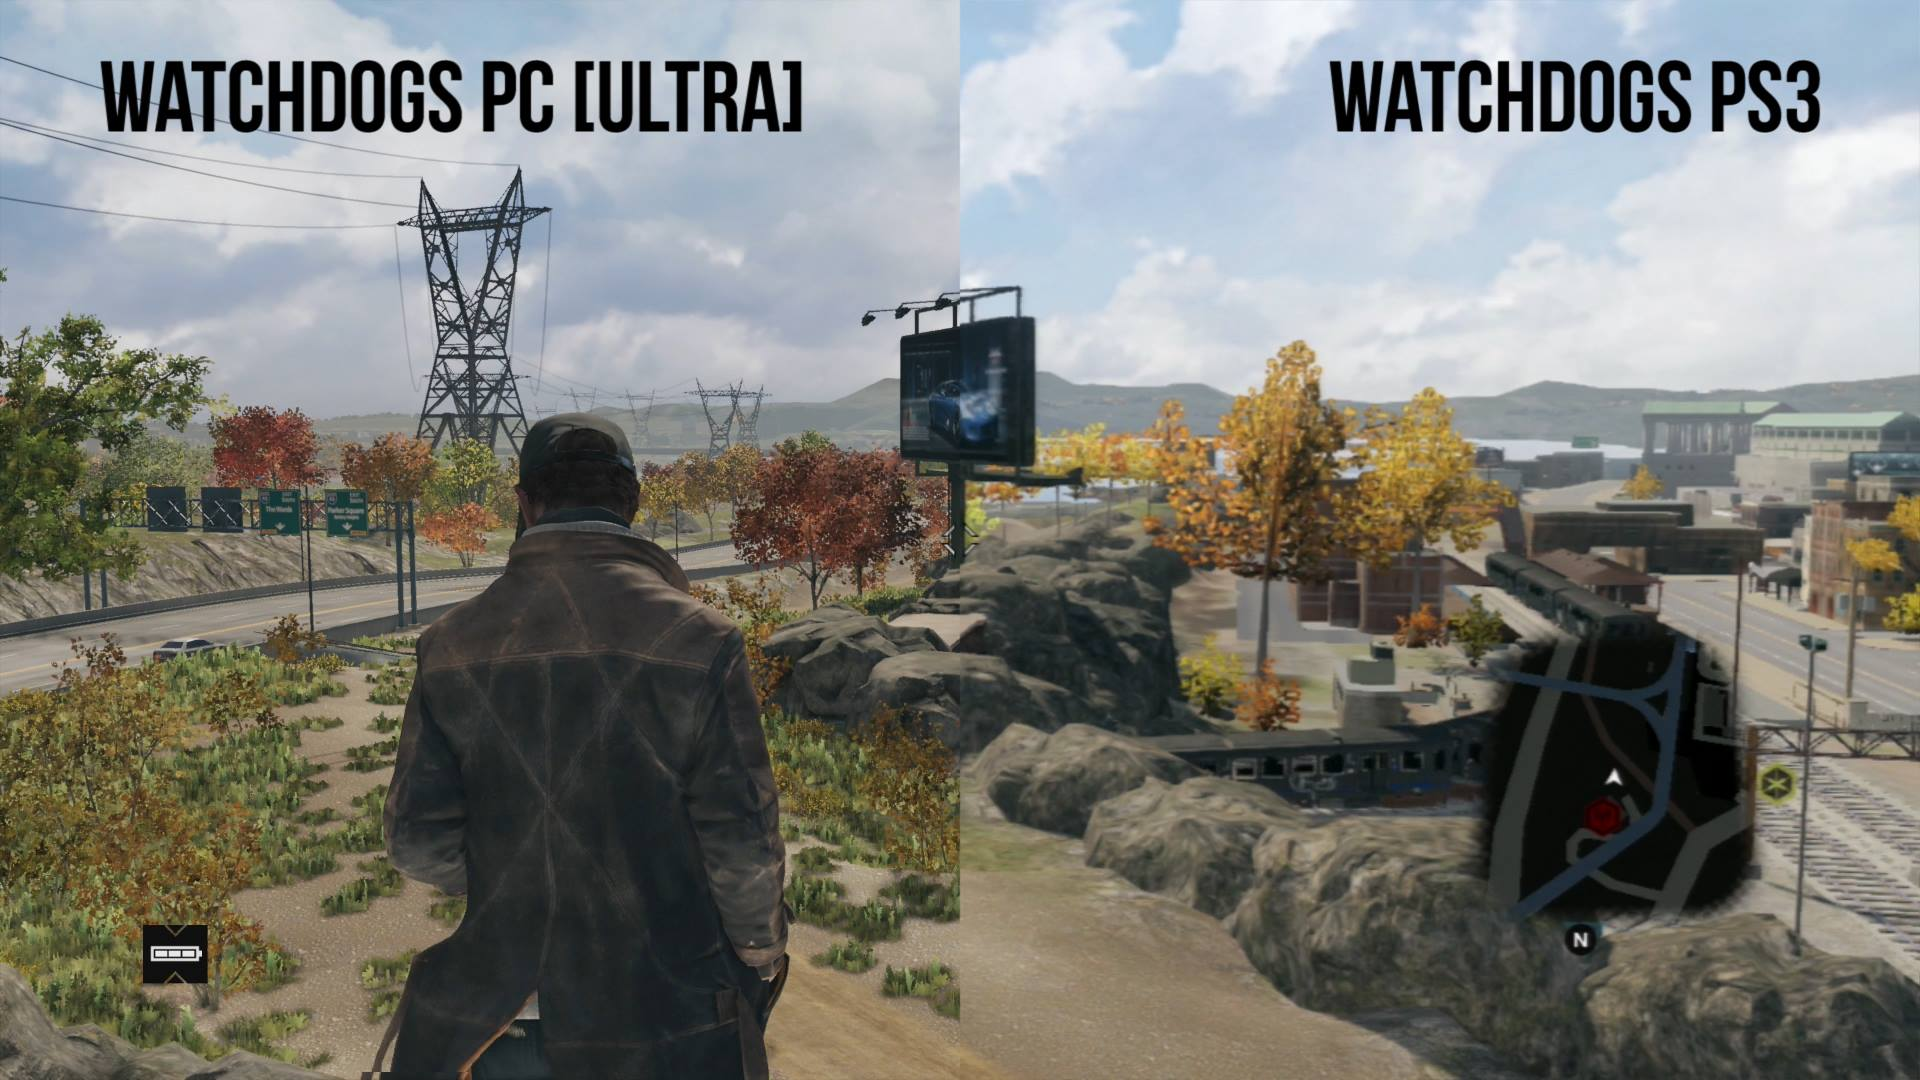 Download Watch Dogs pc vs ps3 thank you based Austin Evans